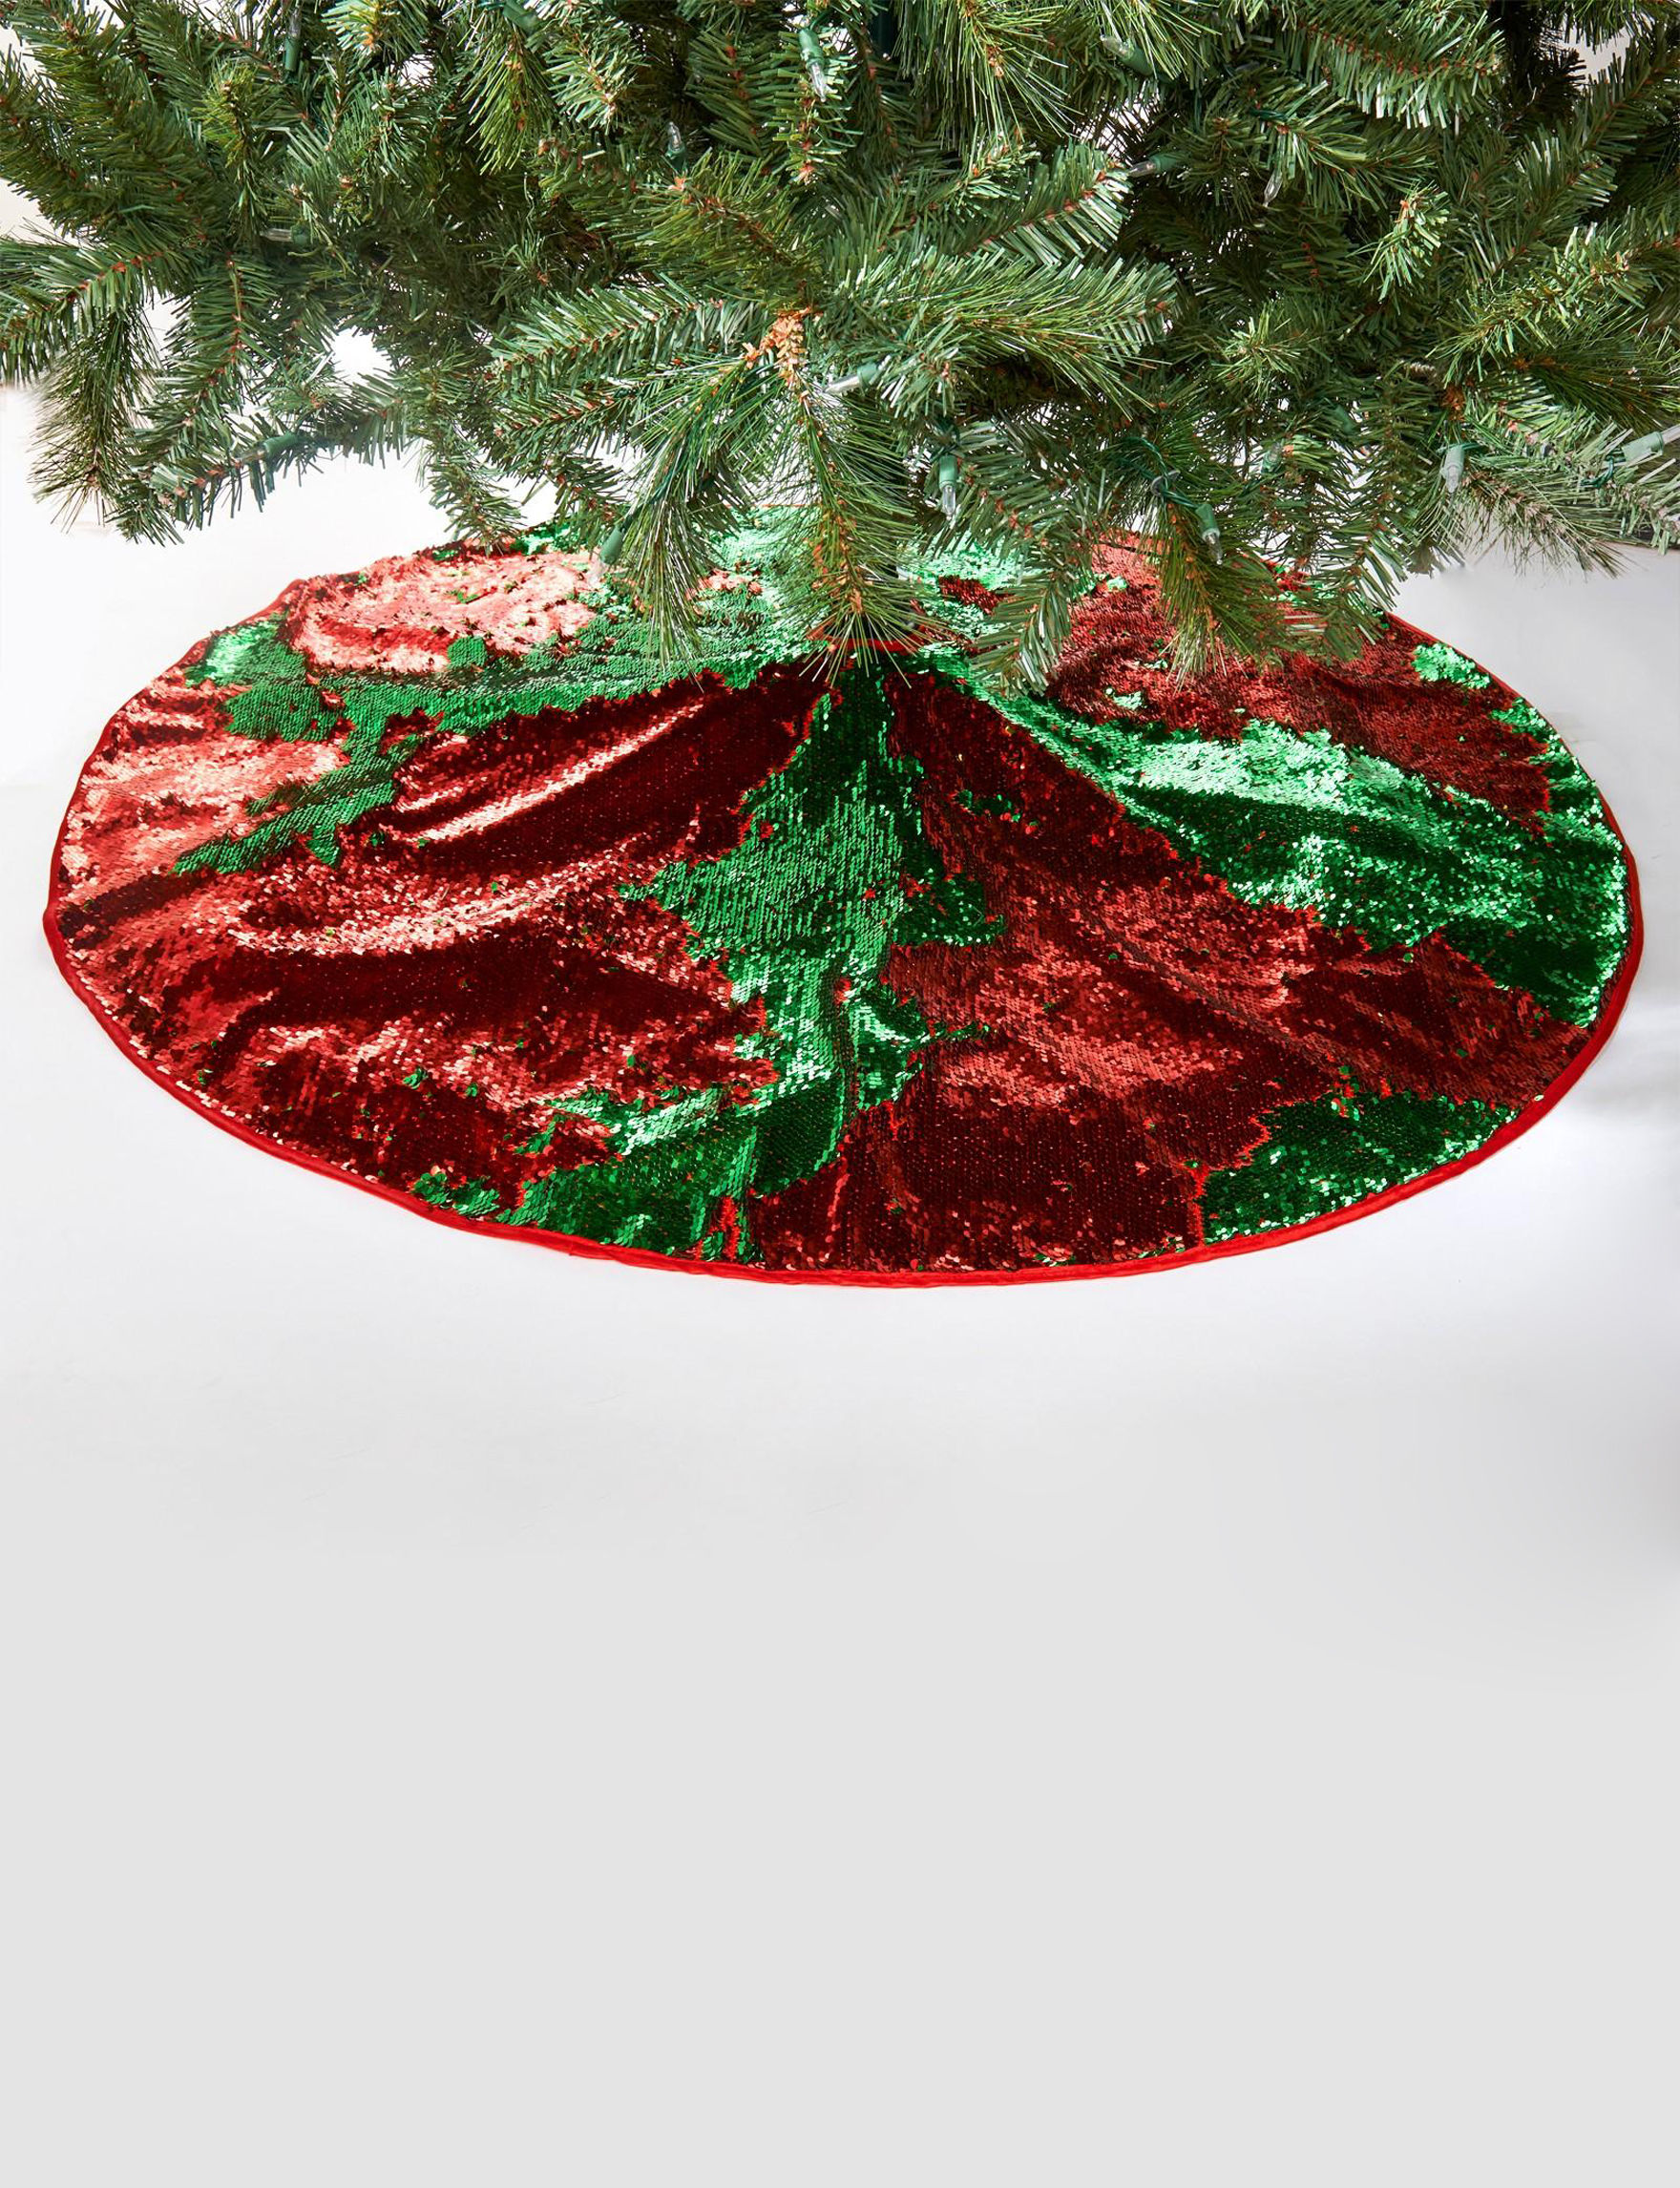 BuySeasons Green / Red Decorative Objects Stockings & Tree Skirts Holiday Decor